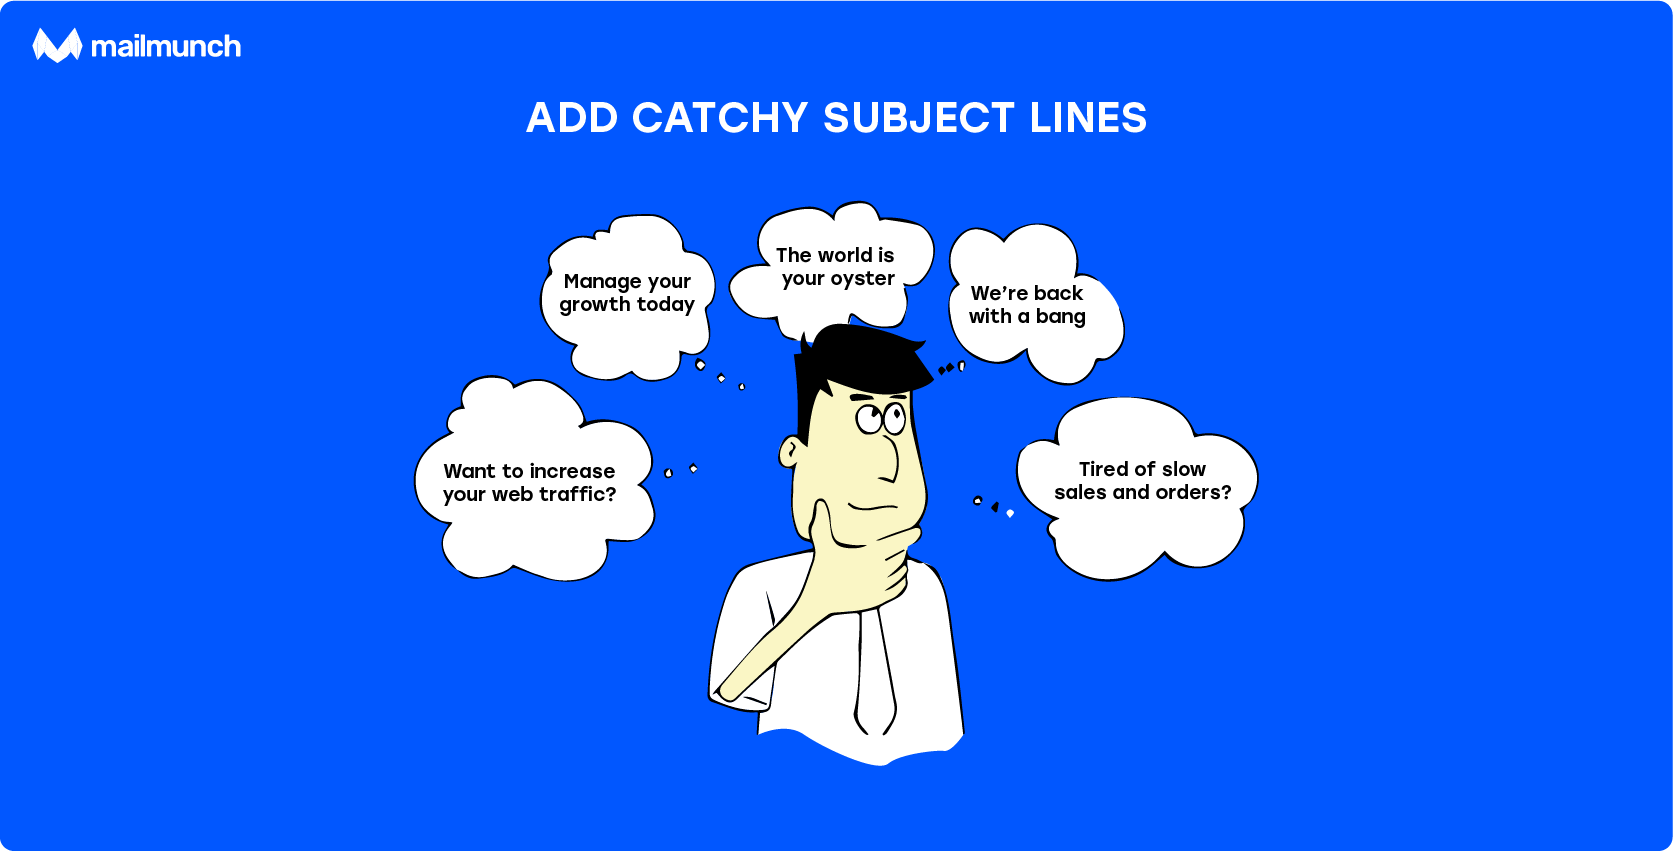 use catchy subject lines in your emails for better open rates